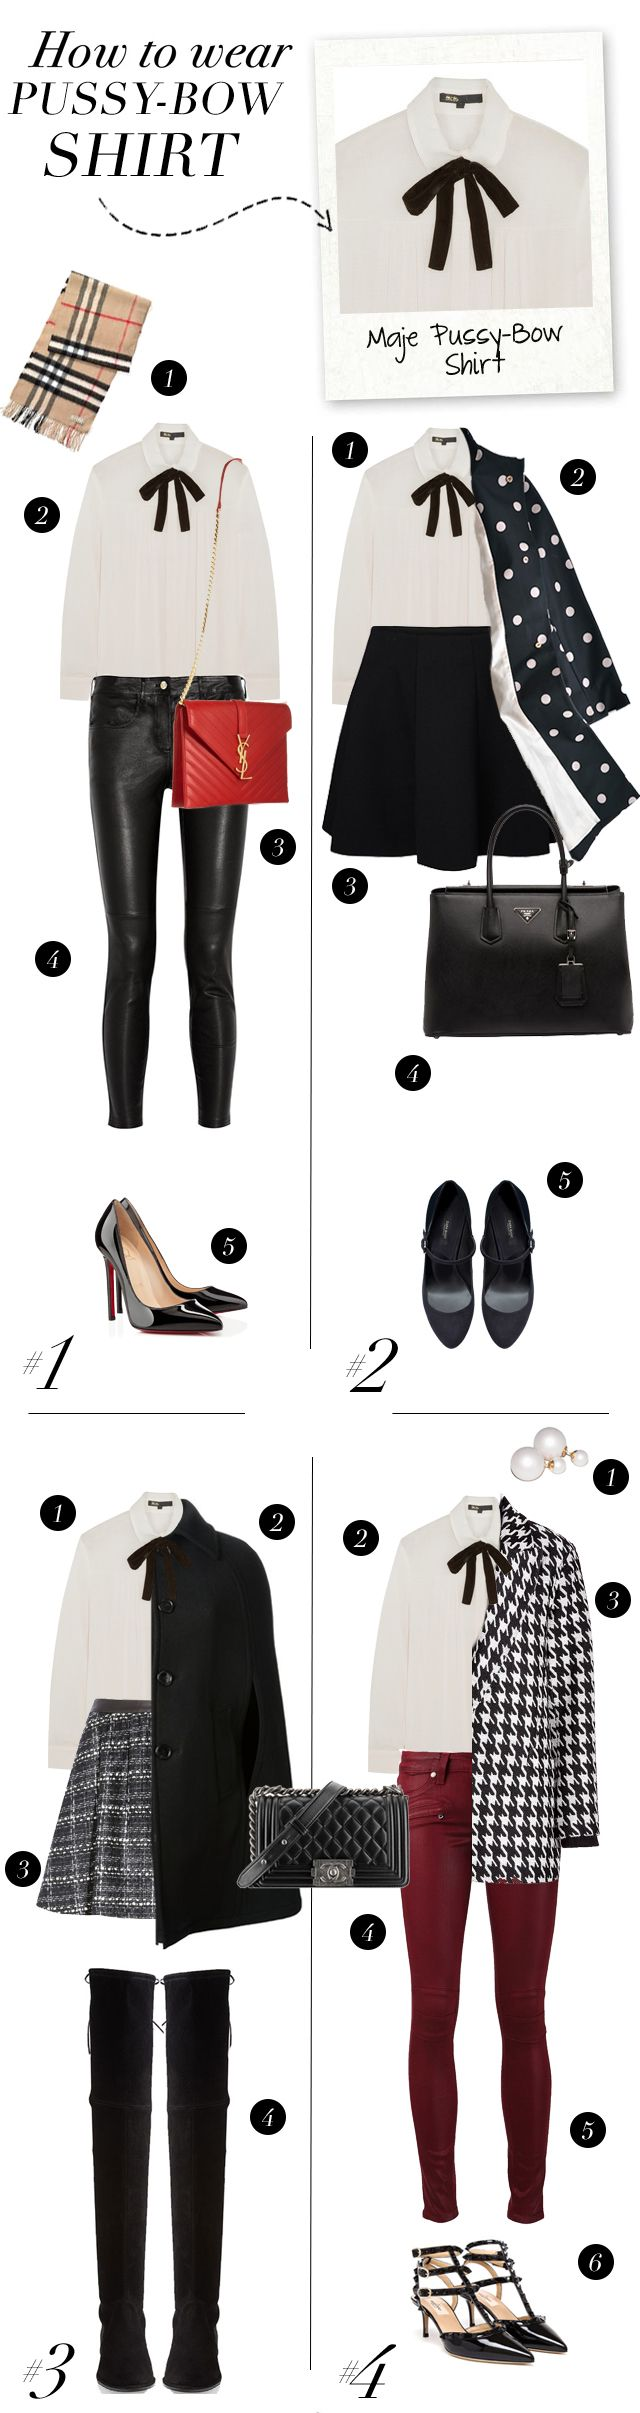 ABLE Leather Bags, Women's Jeans, Apparel & Shoes 60